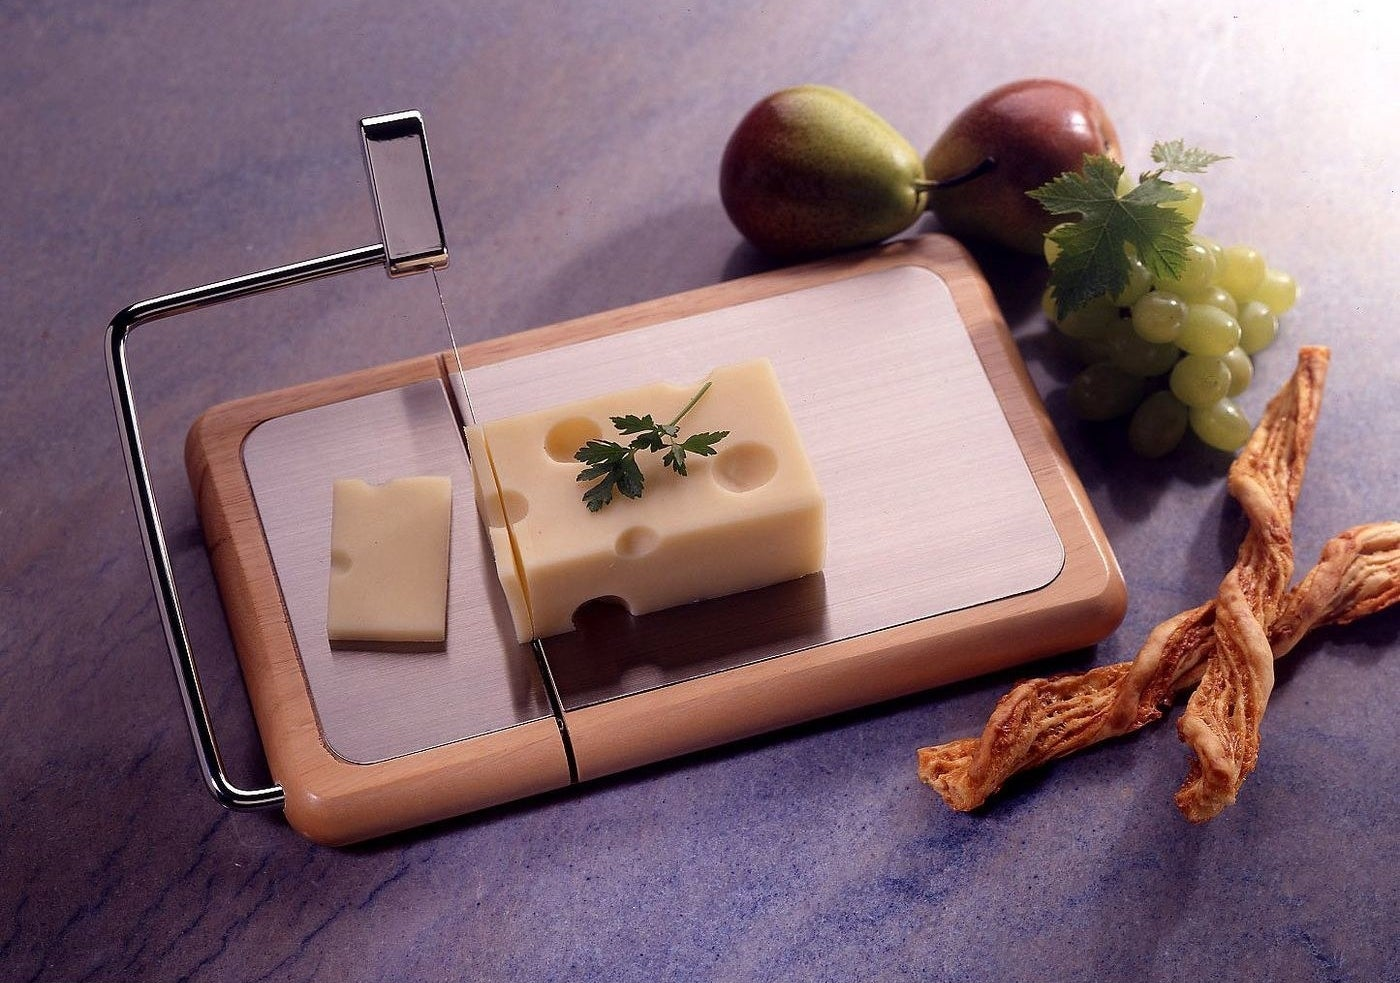 a cheese slicer cutting through a block of cheese on a metal and wood tray